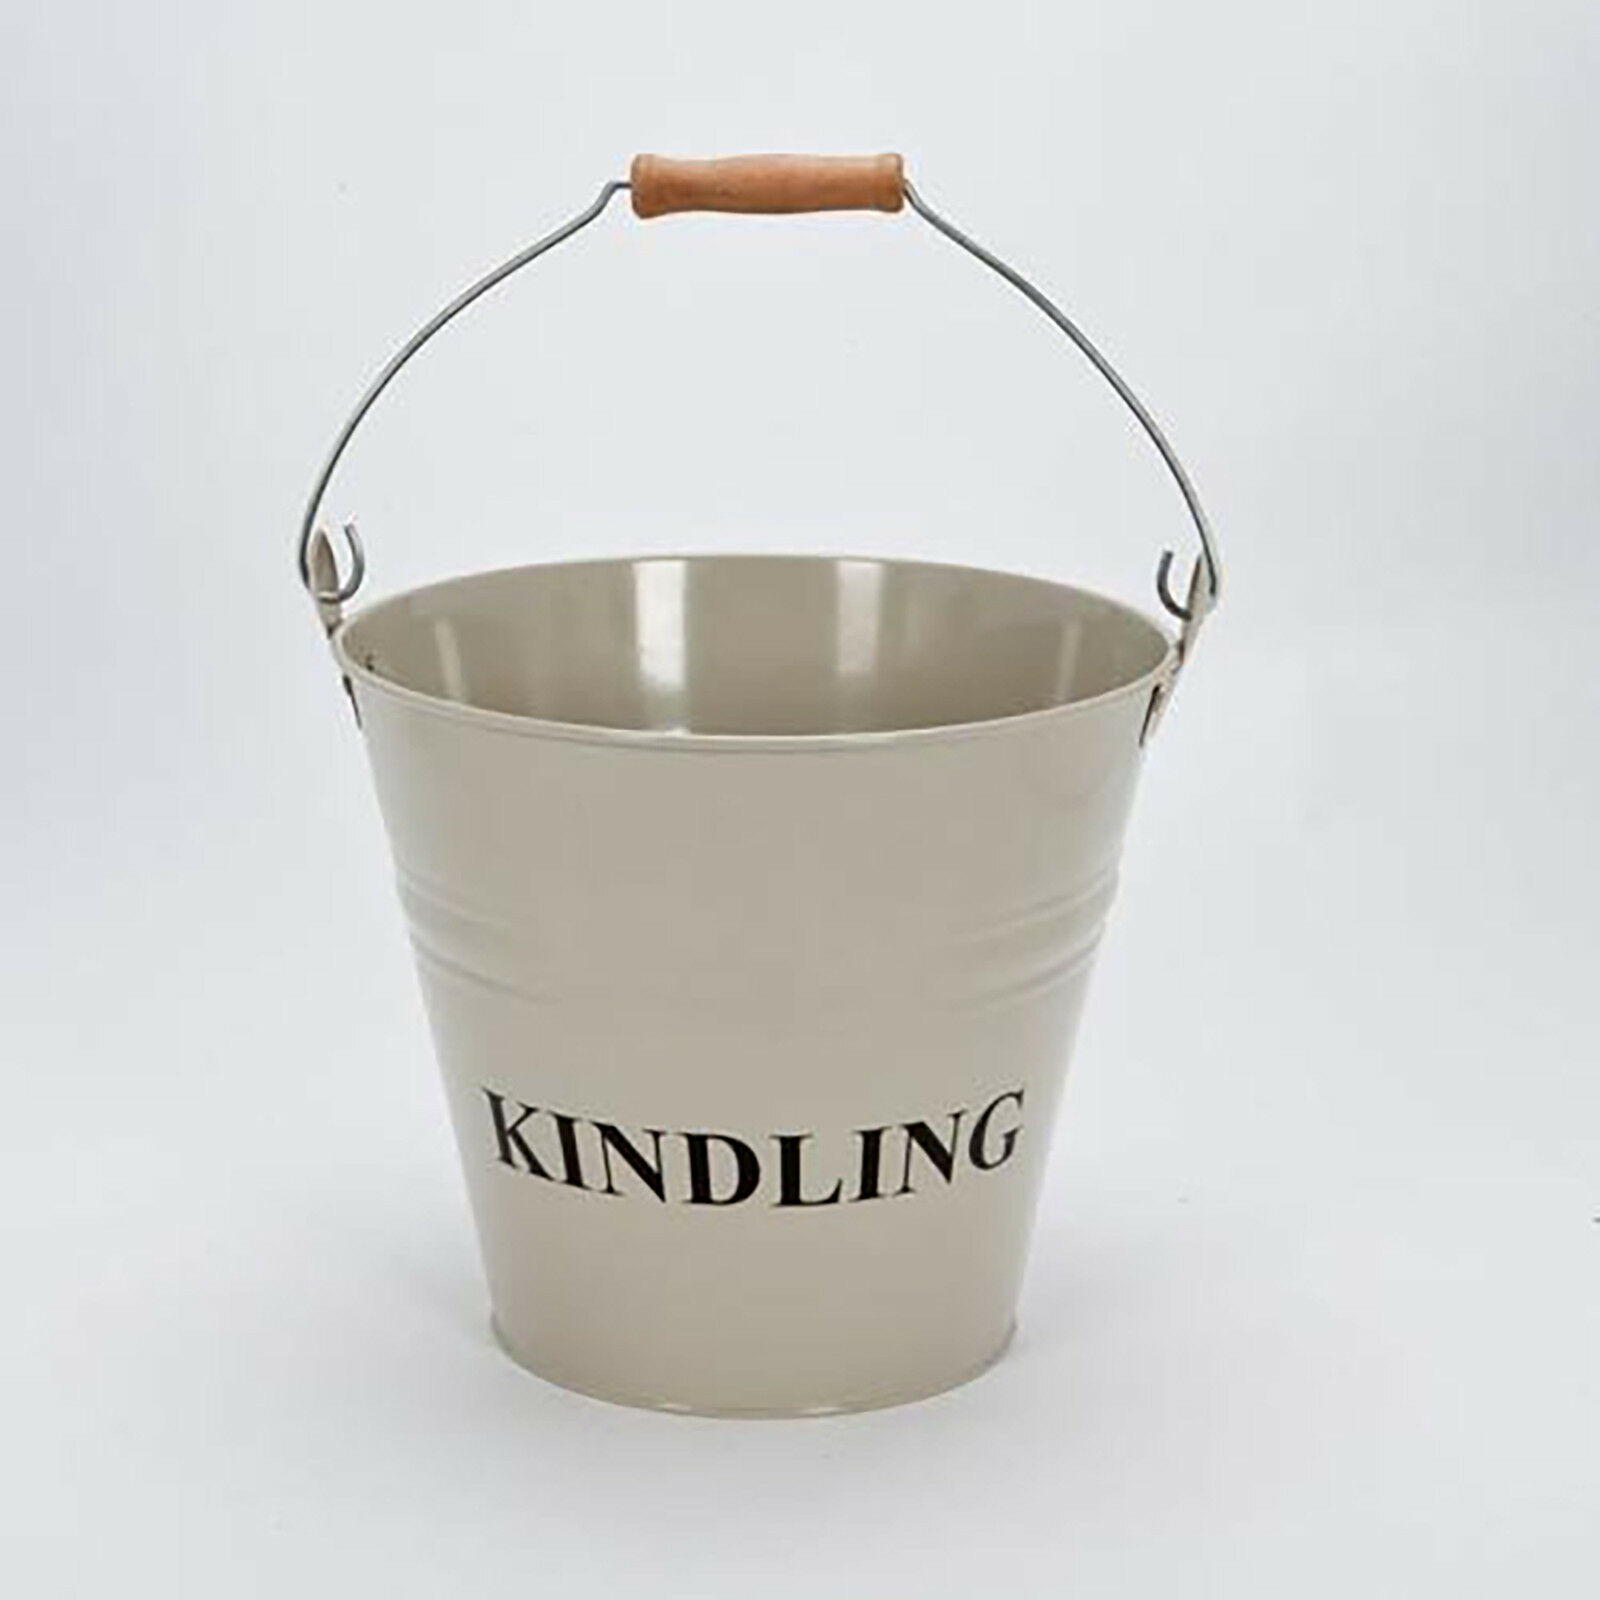 fireside fireplace coal bucket wood log holder scuttle kindling